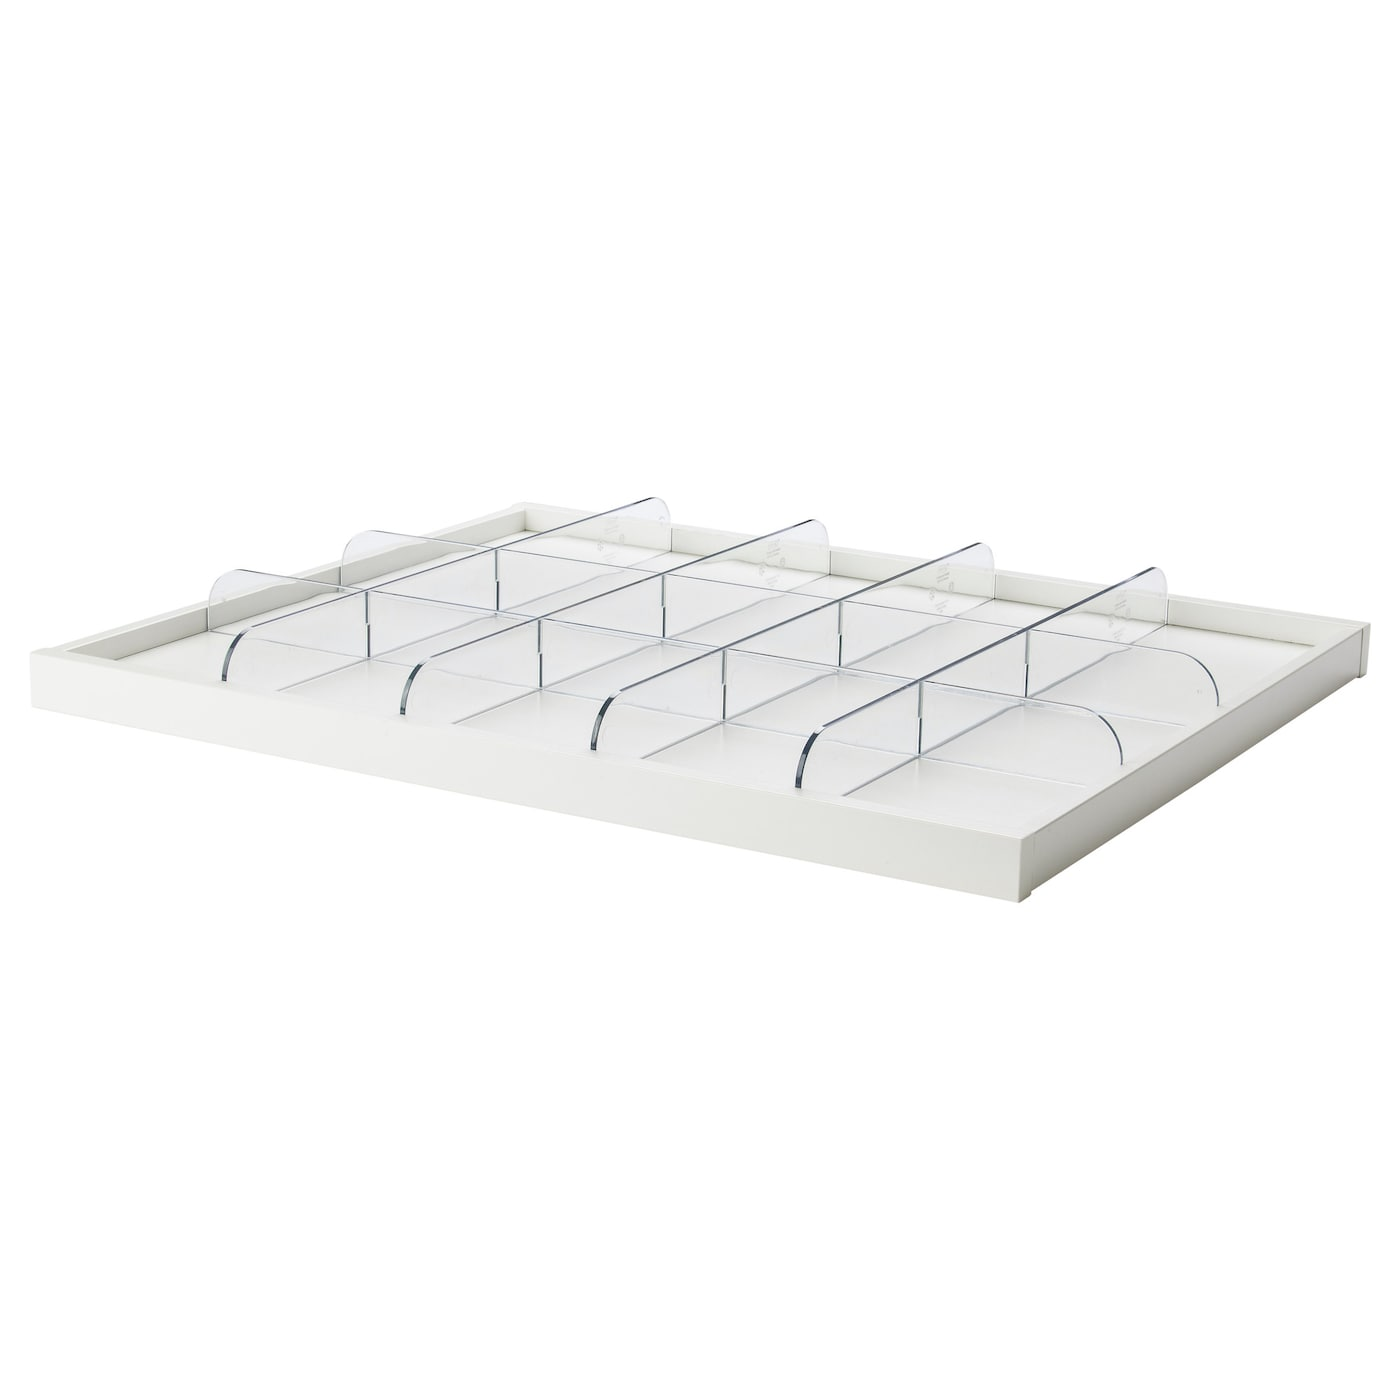 komplement pull out tray with divider white transparent 75x58 cm ikea. Black Bedroom Furniture Sets. Home Design Ideas